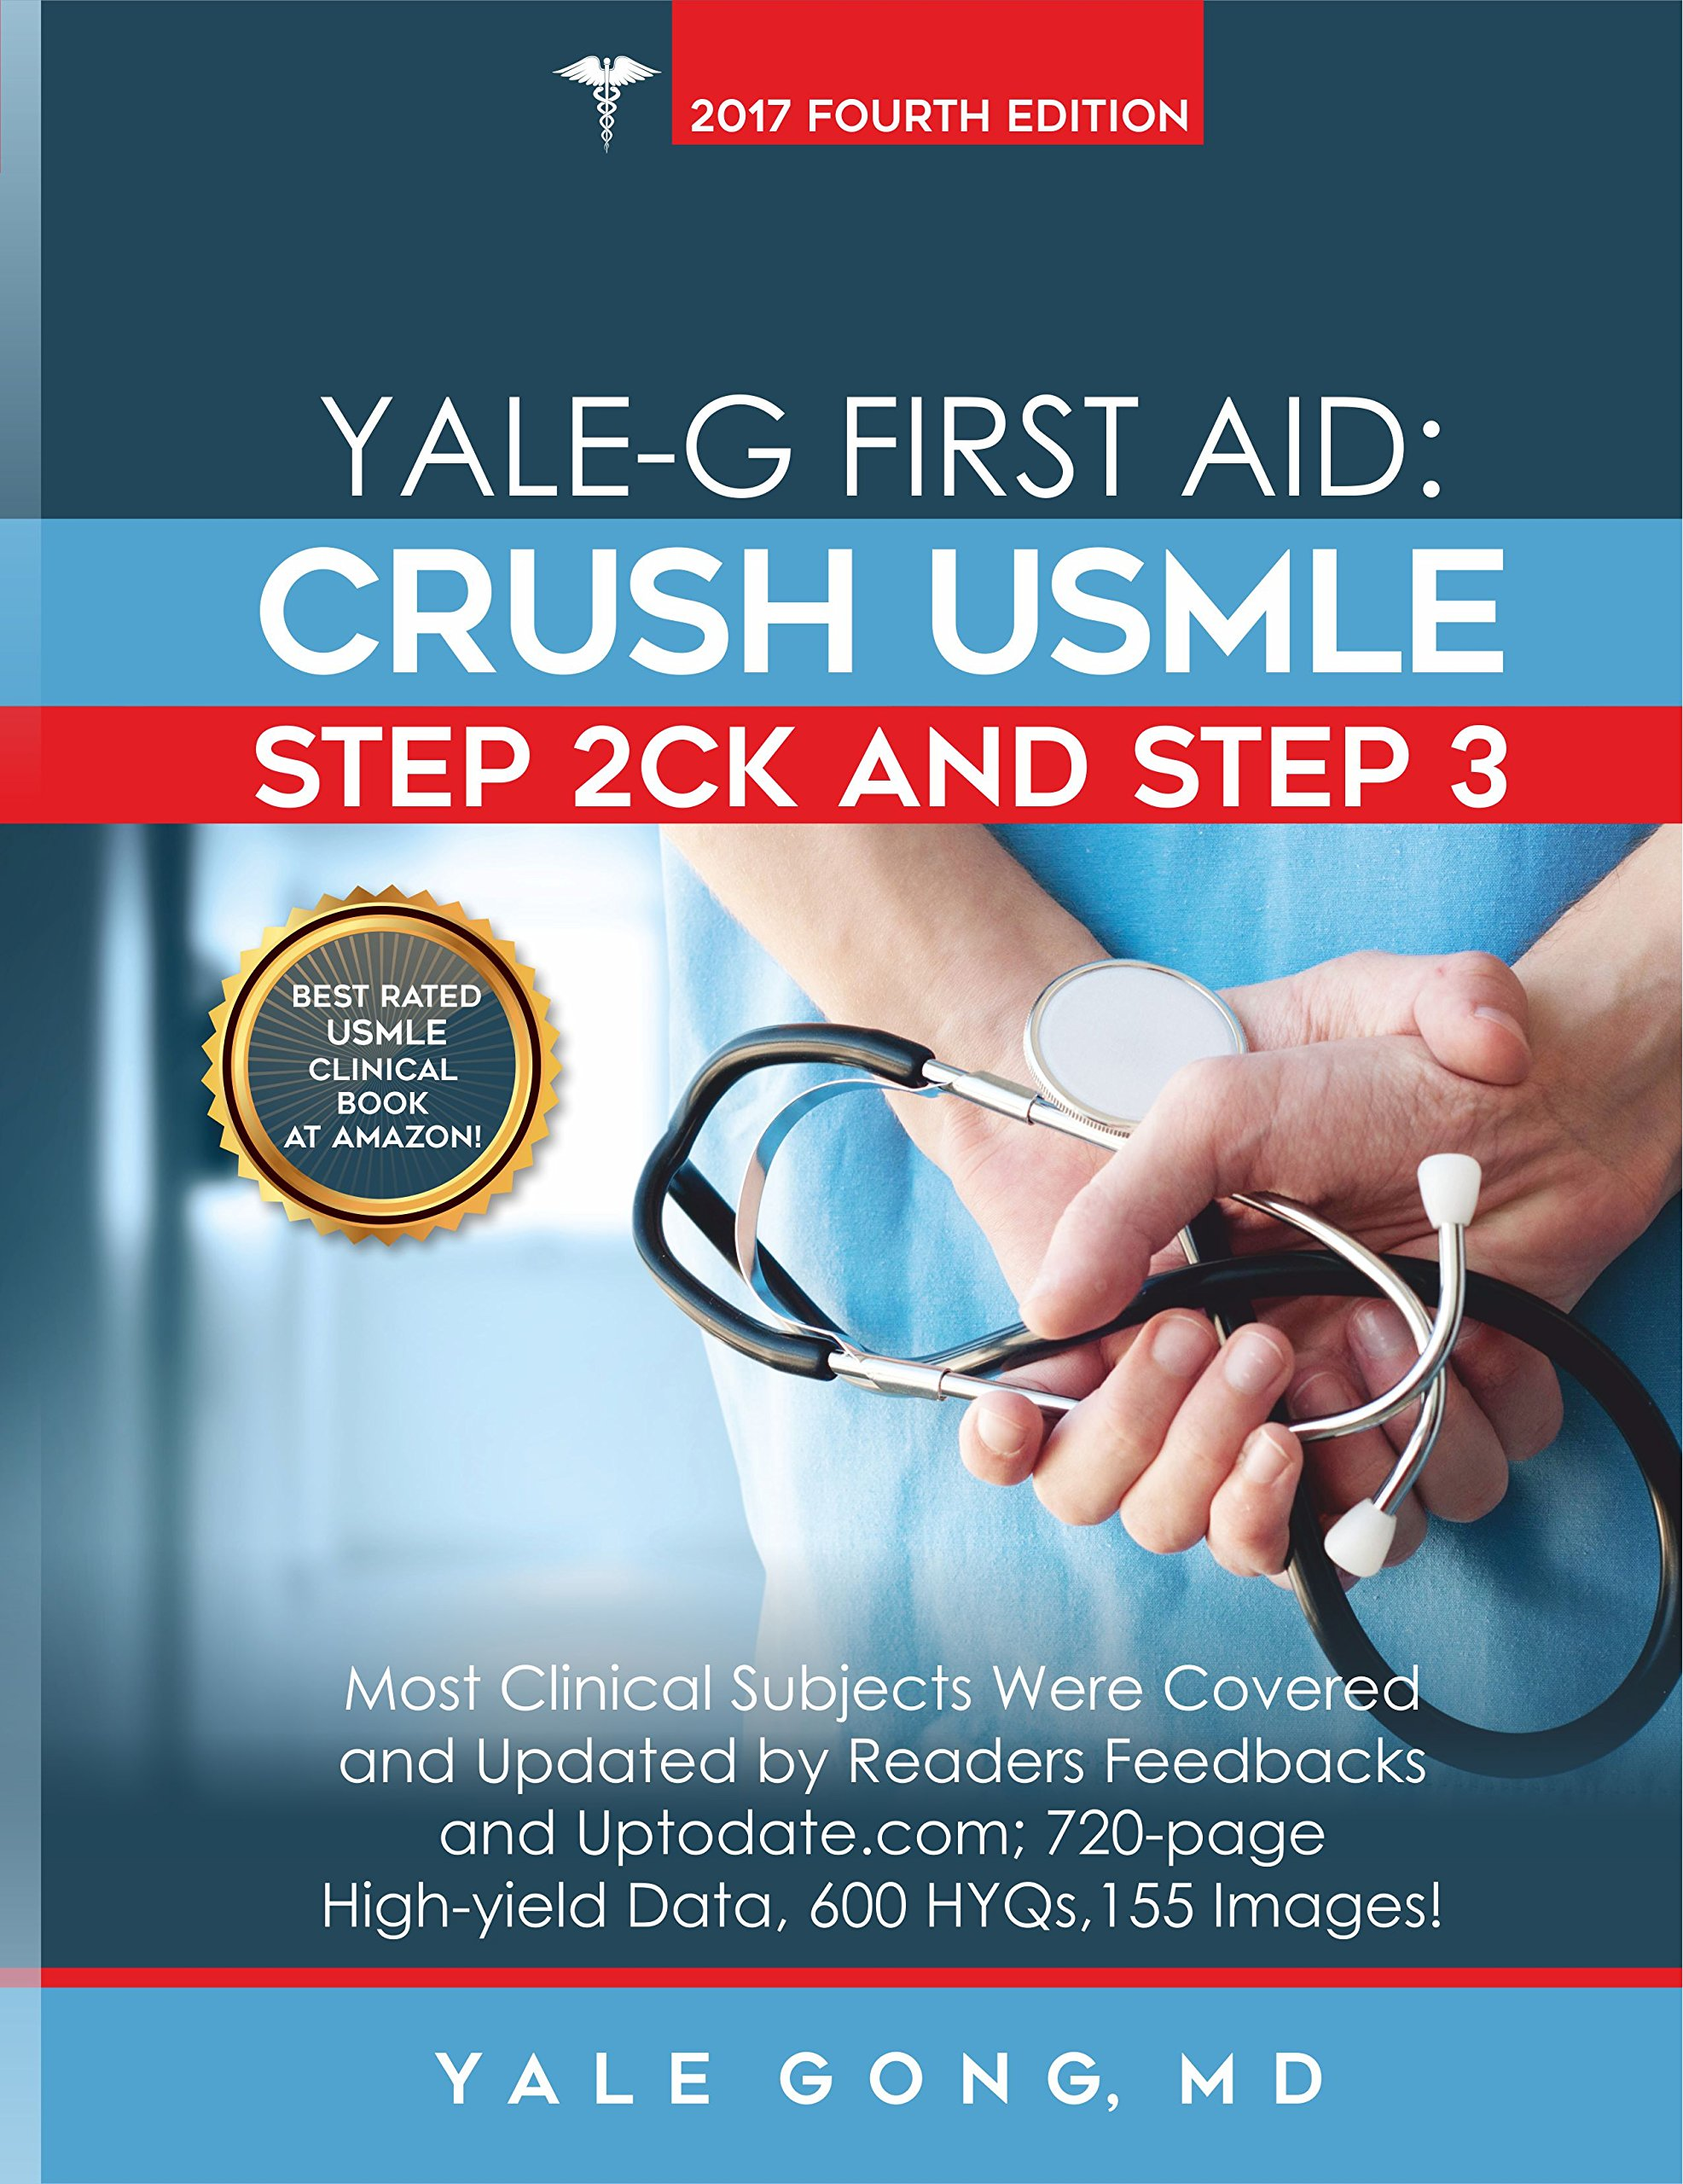 Yale G First Aid Crush Usmle Step 2ck Step 3 Ed4 Yale Gong Md